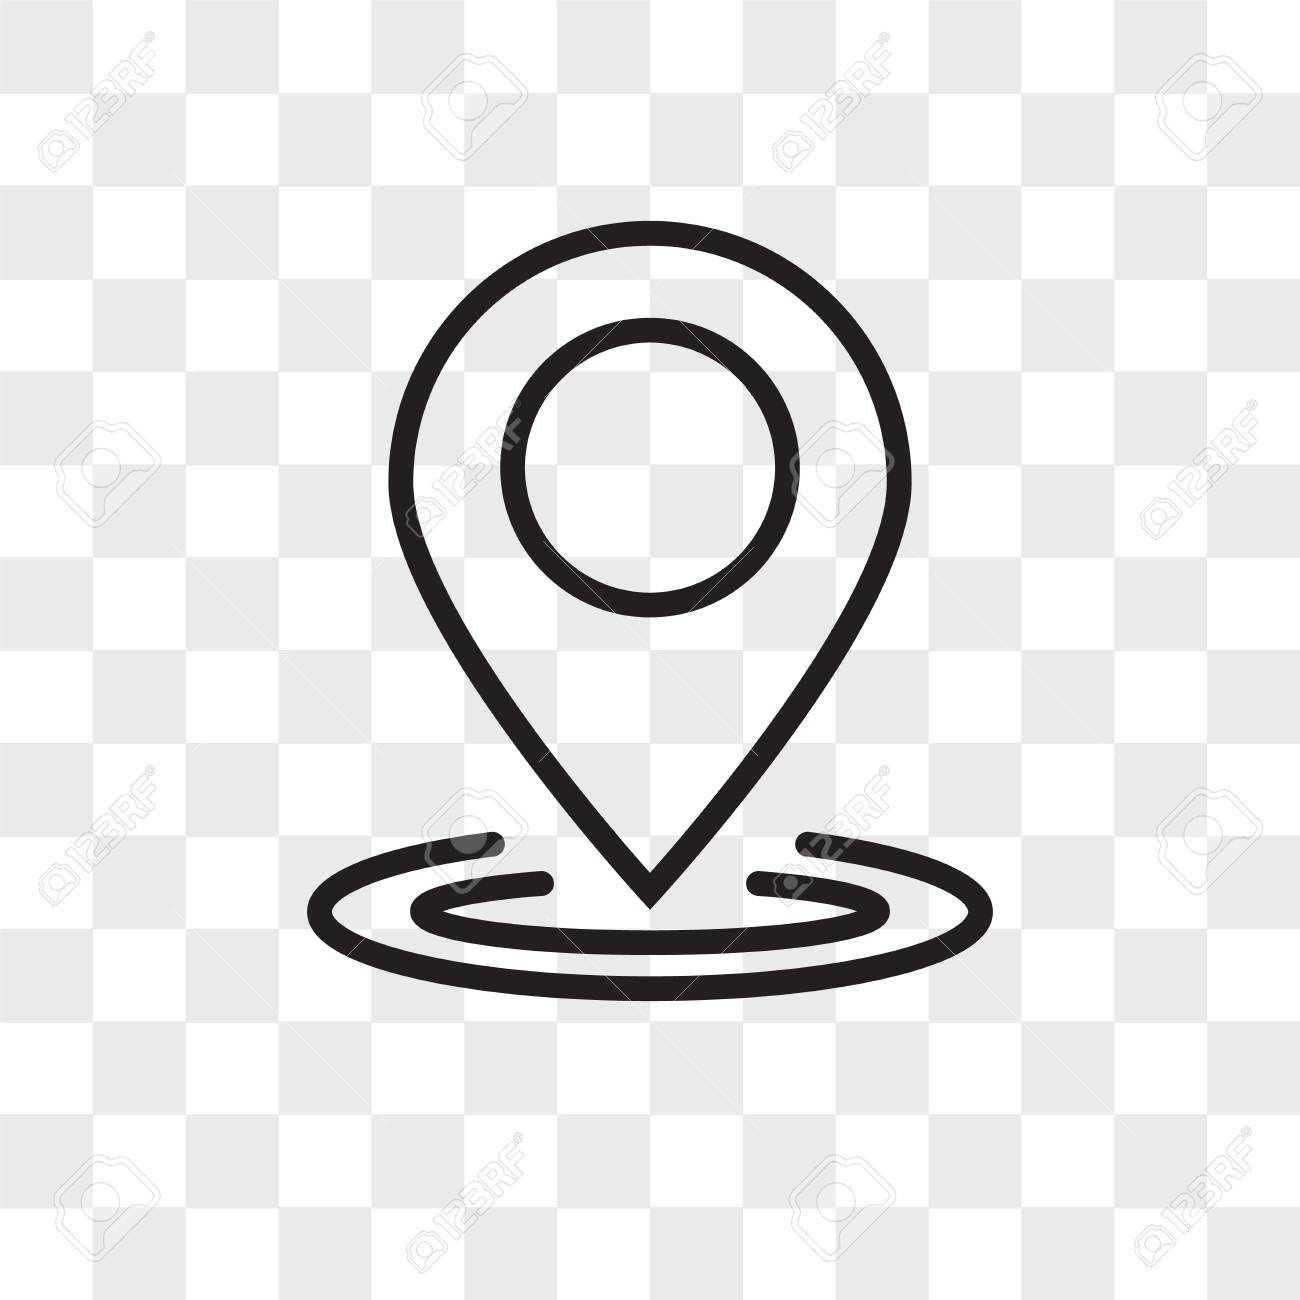 location icon transparent background free location icon transparent background png transparent images 47717 pngio location icon transparent background